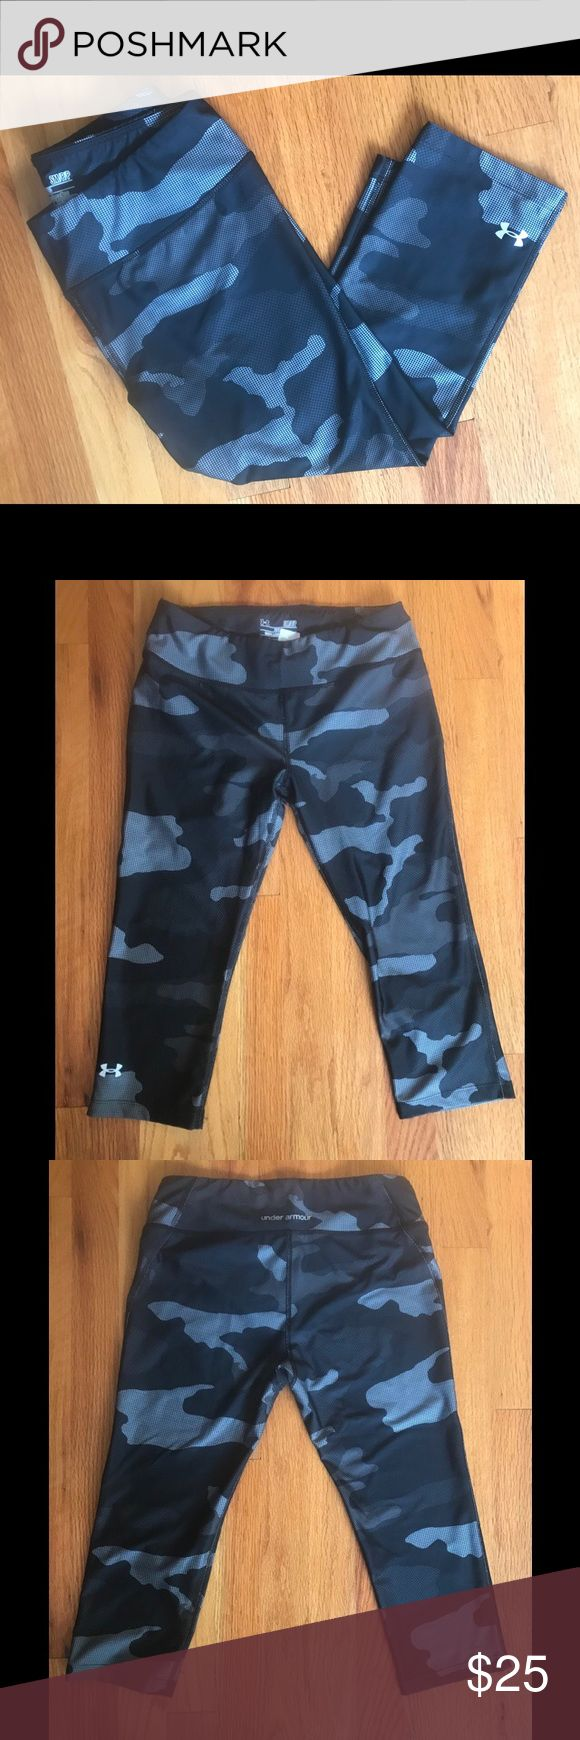 """Under Armour Fitted Camo Crop Pant Under Armour fitted, crop, heat gear pant. Black and gray camo pattern. Size: S. Used, like new.   Inseam: 18"""" Waist: 14.5""""   ‼️Reasonable offers welcome‼️ Under Armour Pants Leggings #pregnancypants,"""